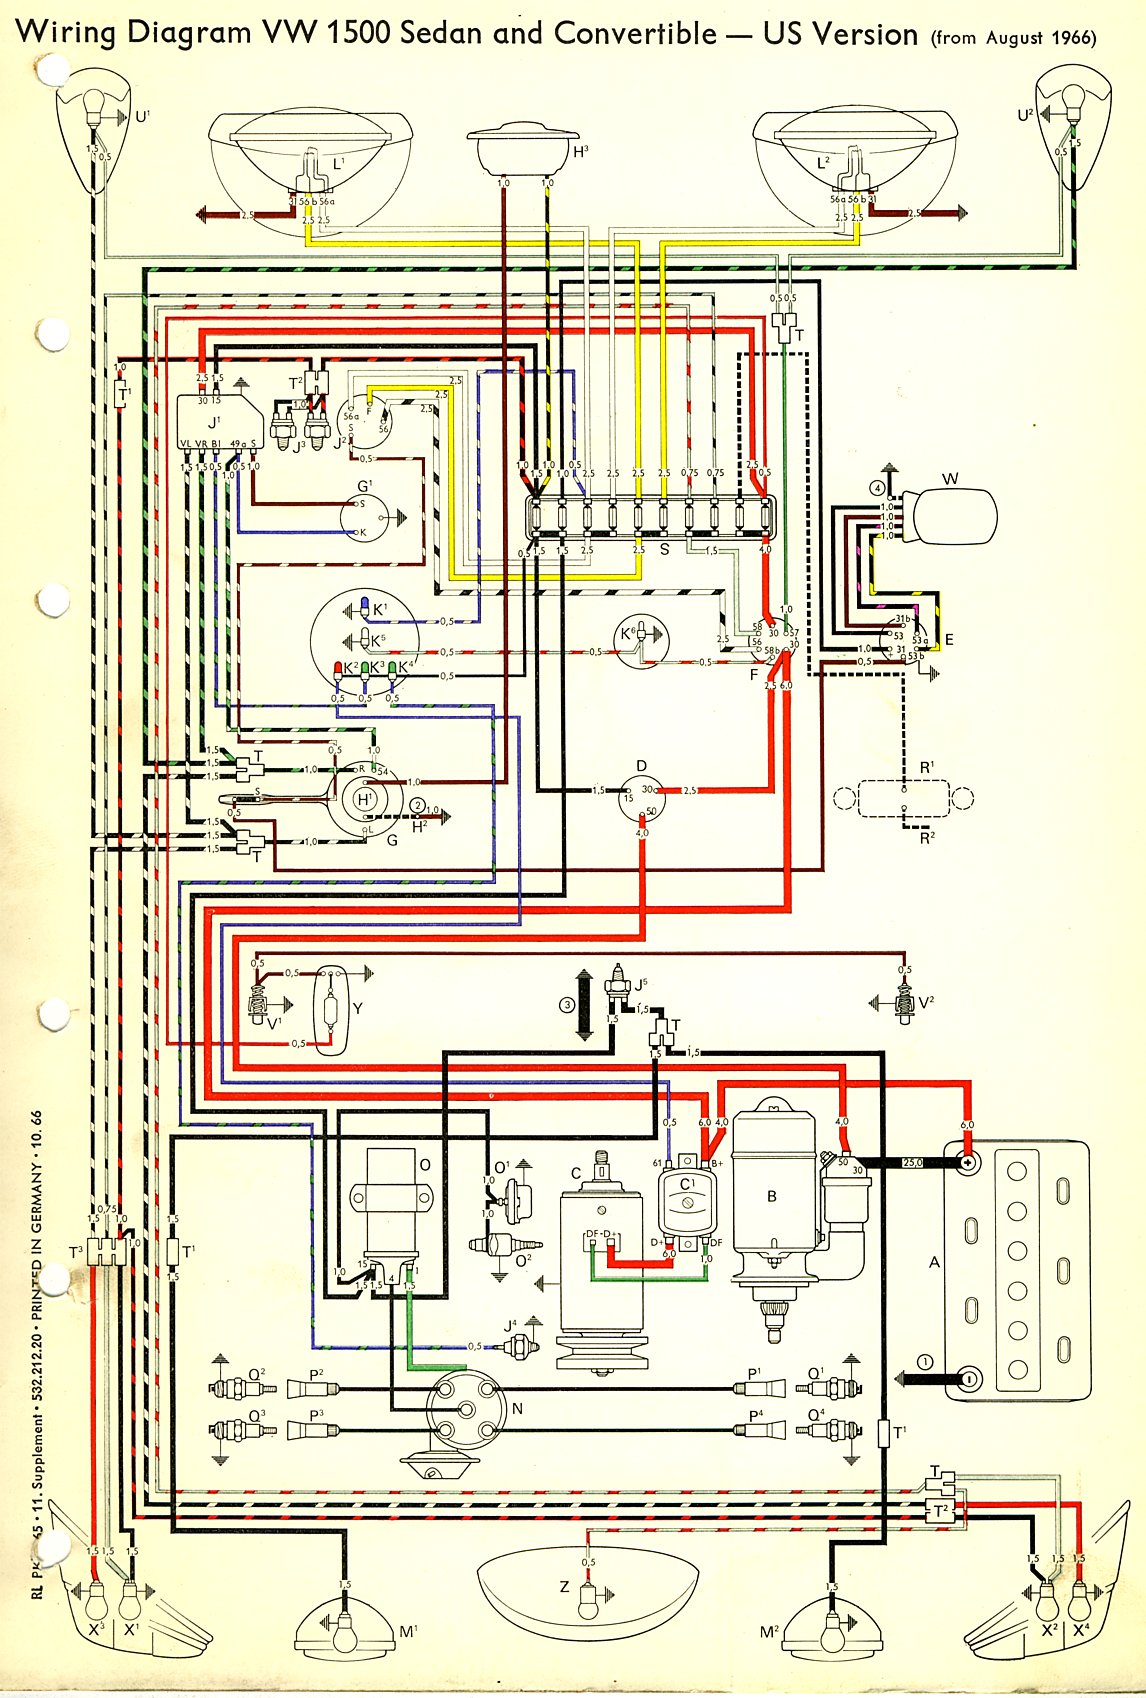 bug_67_USA thesamba com type 1 wiring diagrams beetle wiring diagram to fix a/c fan at readyjetset.co